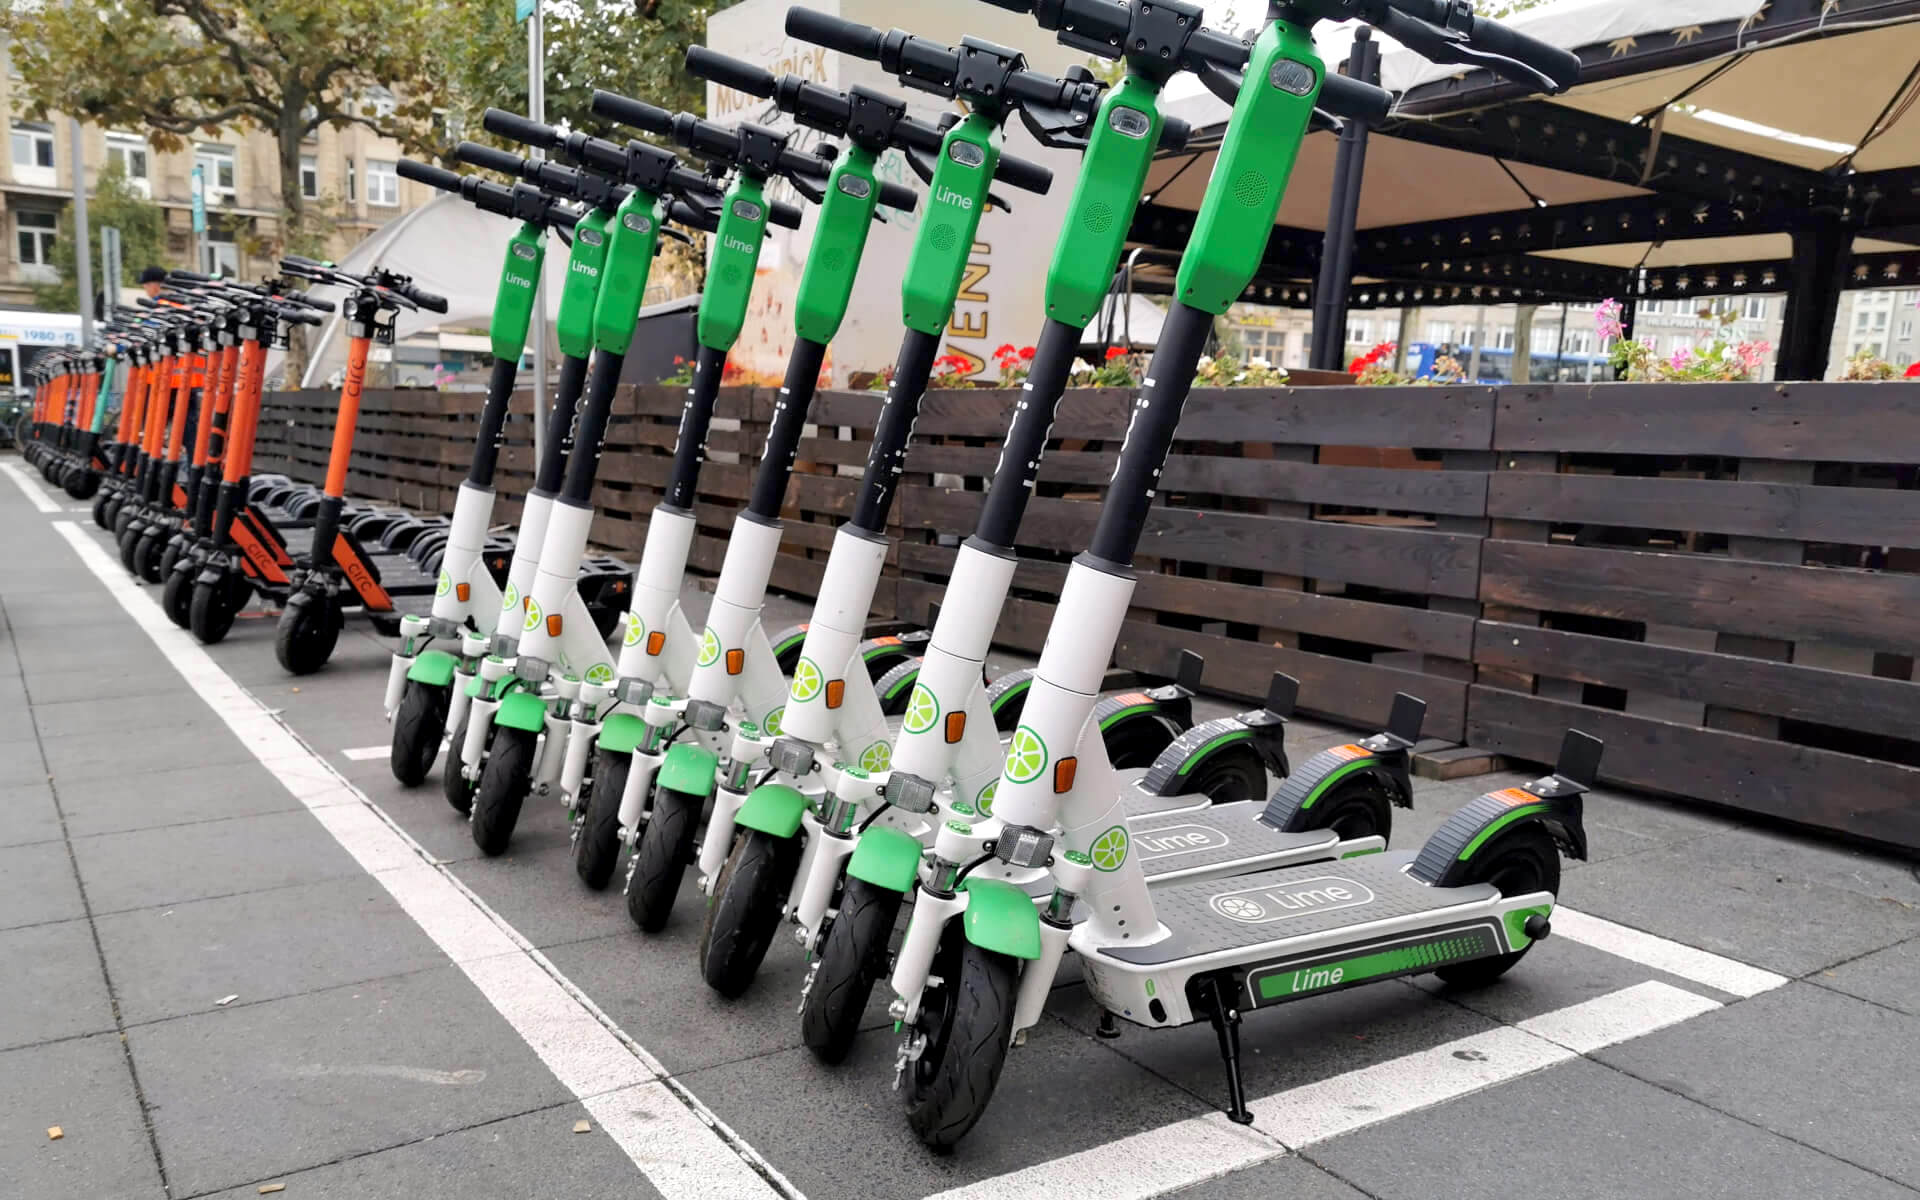 e-scooters use magnetic connectors for charging